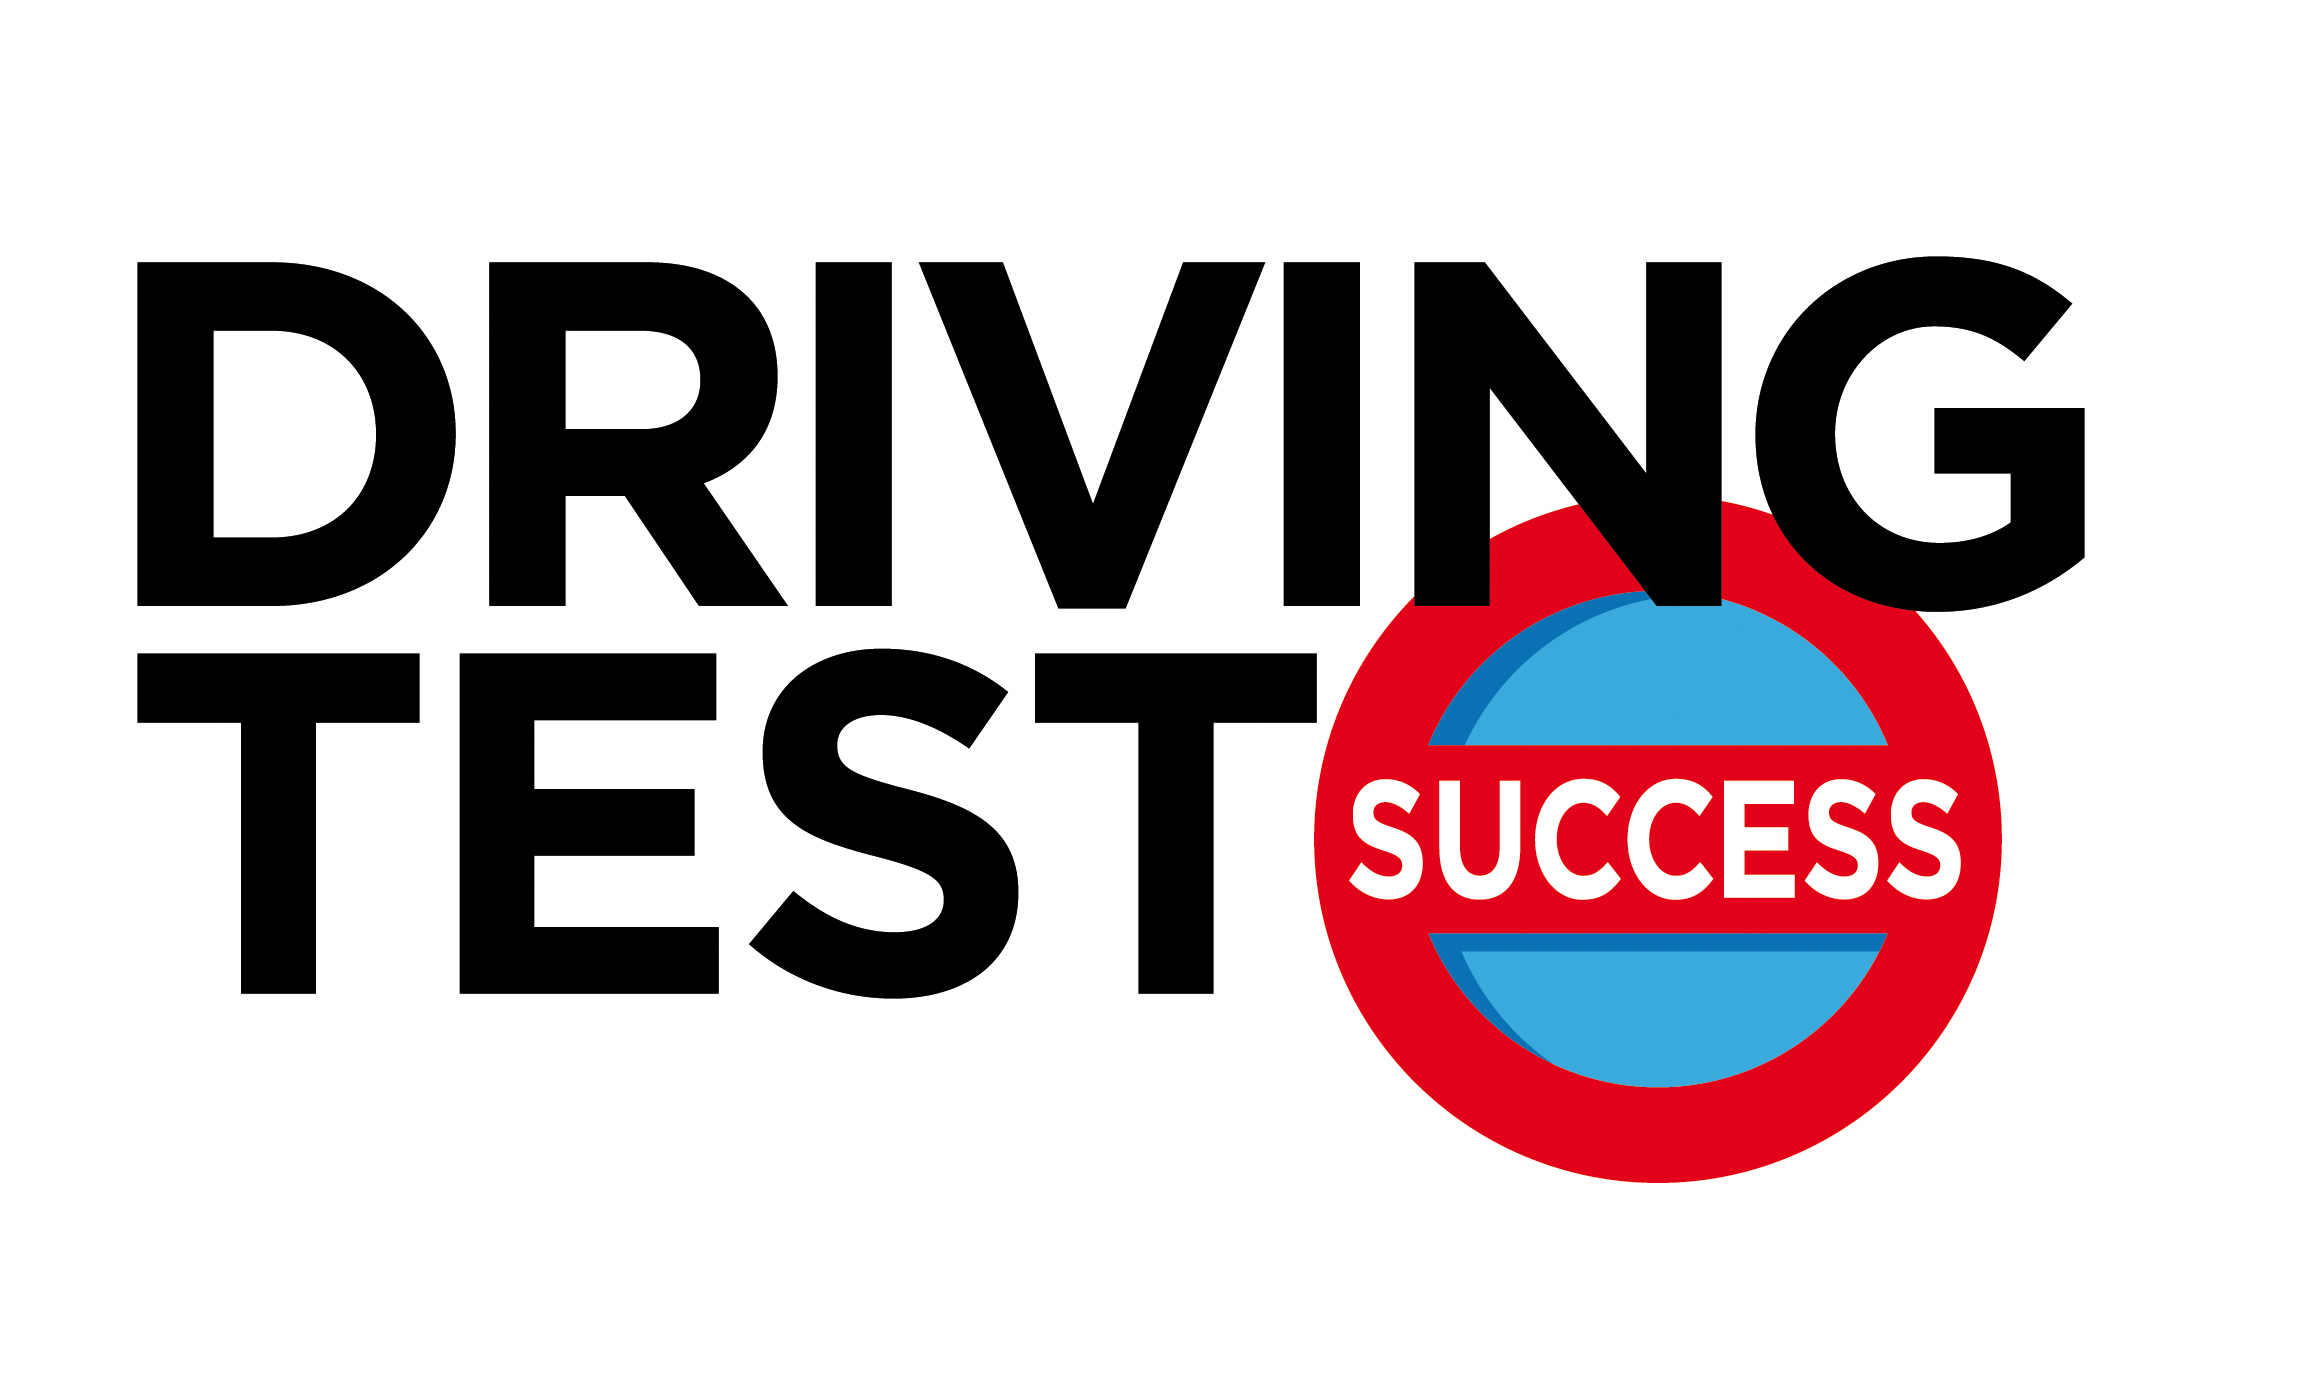 Driving Test Success